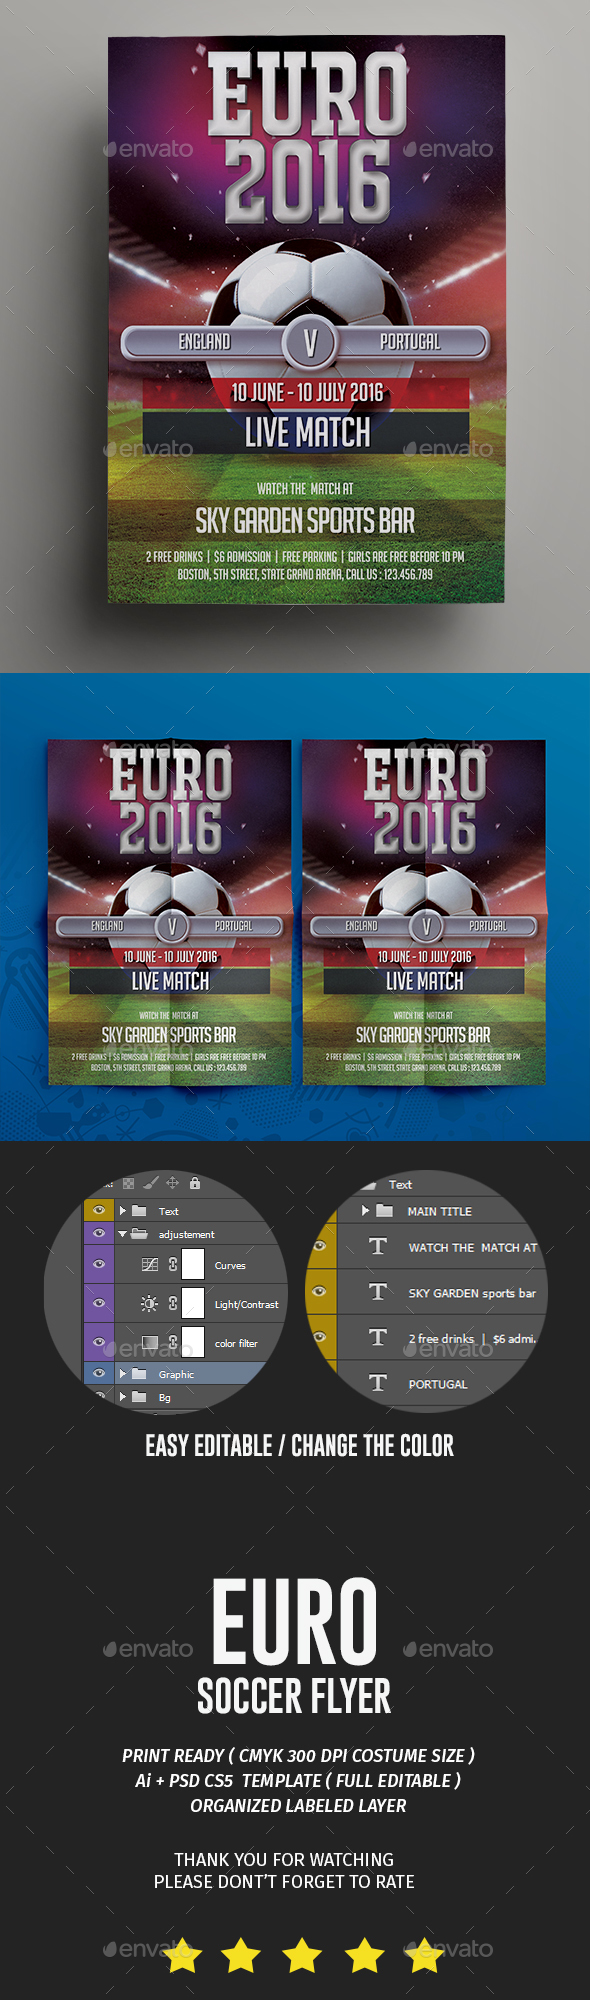 Amazing Psd Euro Soccer Flyer Template  Only Available Here